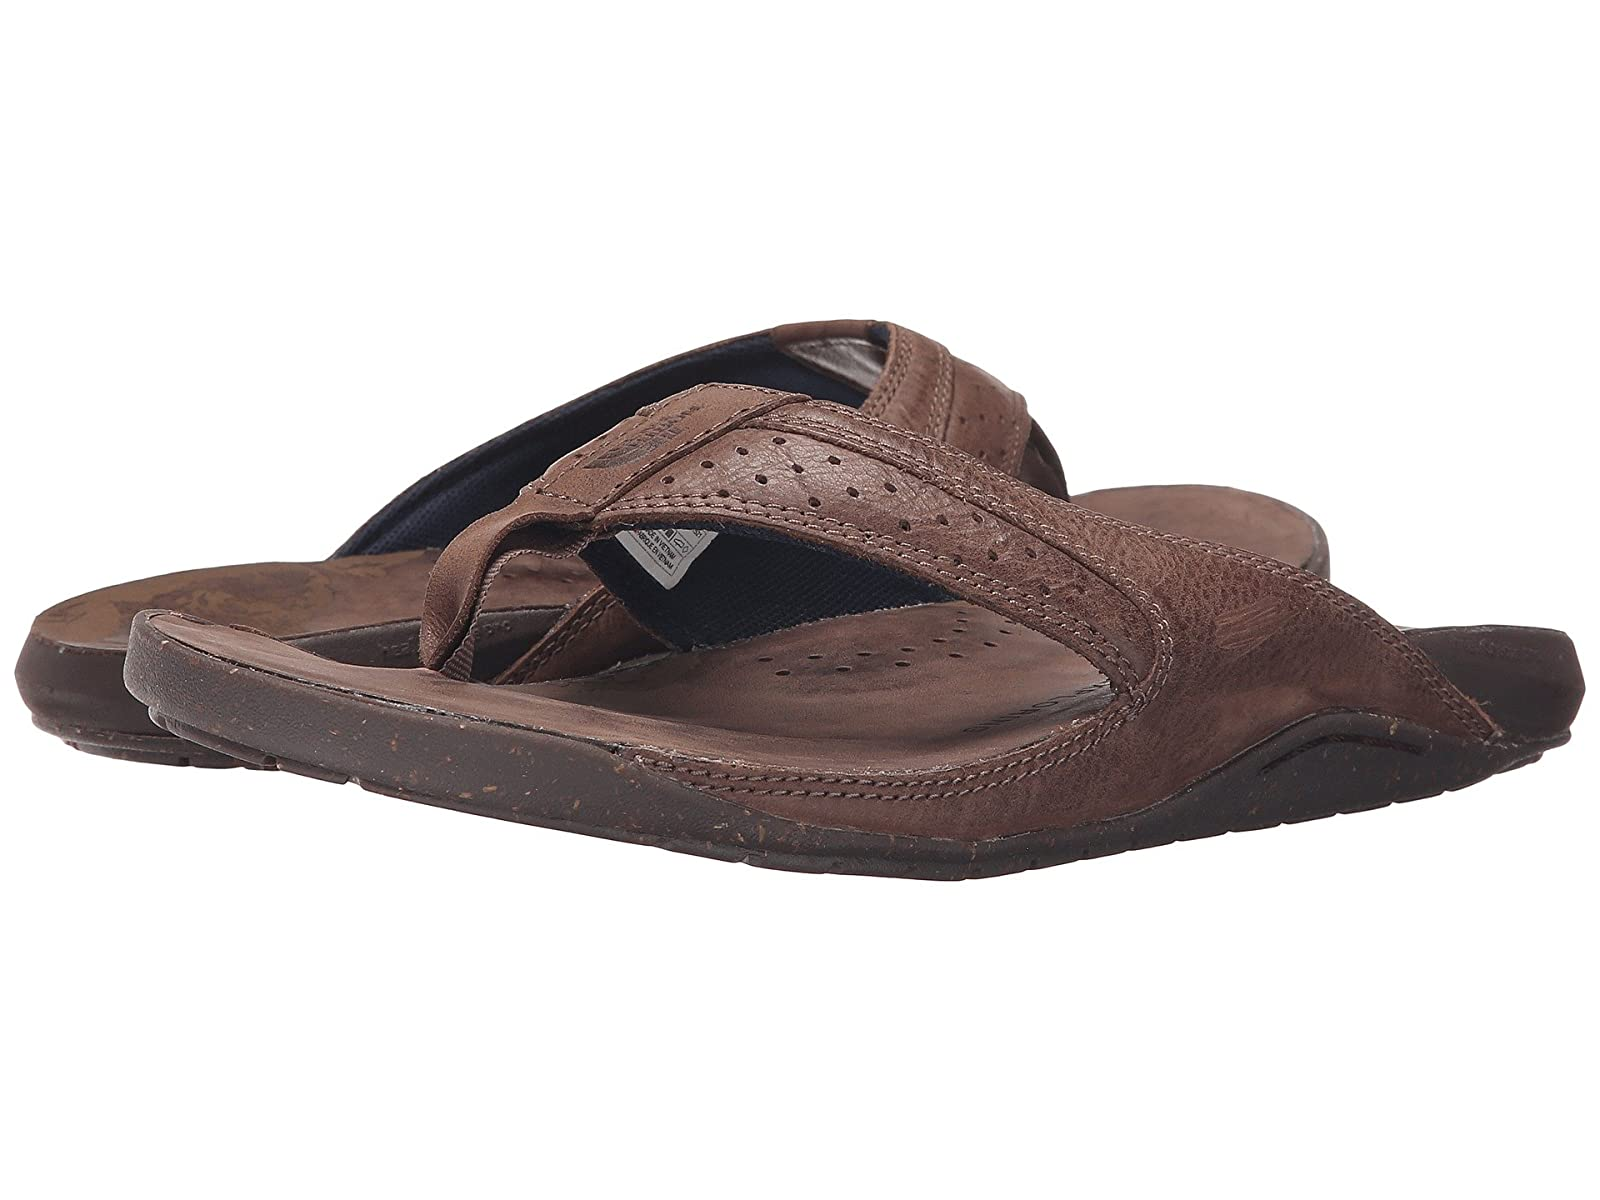 The North Face Bridgeton Flip FlopCheap and distinctive eye-catching shoes